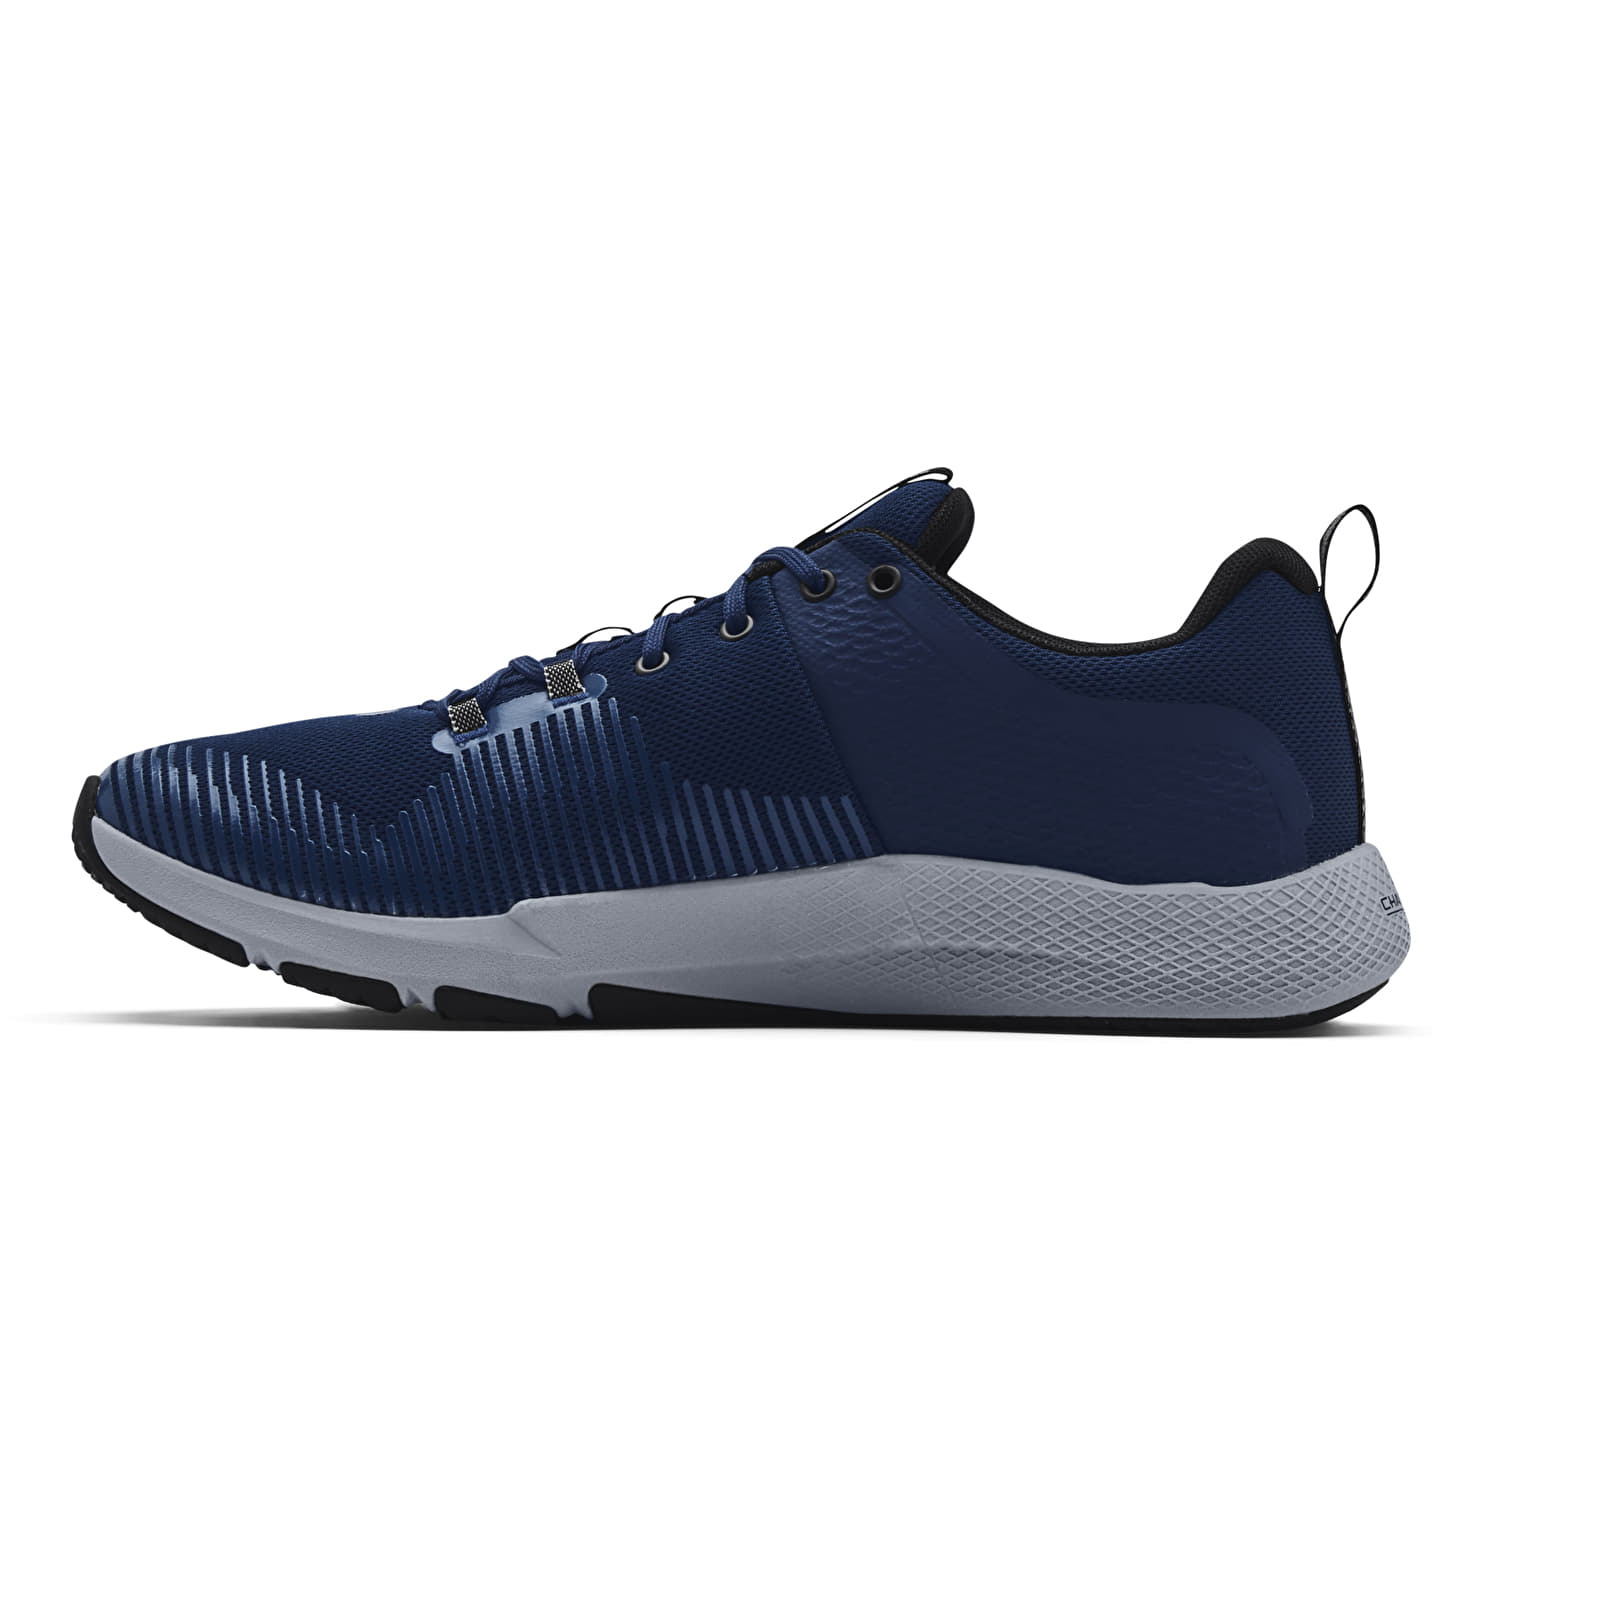 Under Armour Charged Engage Navy 3022616-401